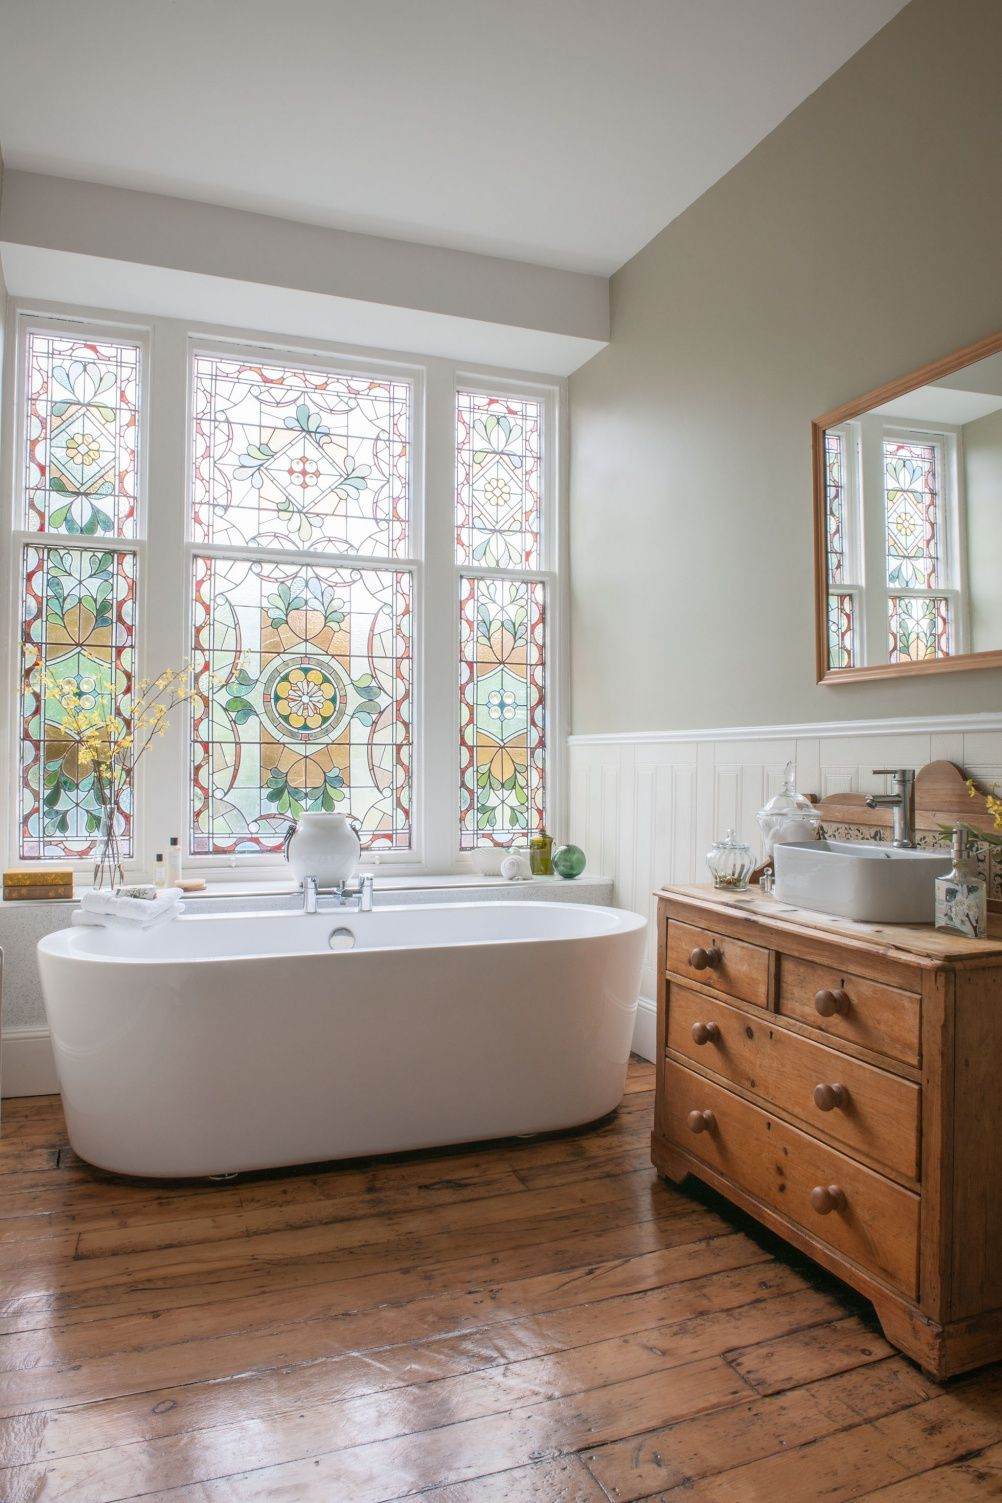 Decorative Windows For Bathrooms A Striking Restored Victorian Stained Glass Window In A Bathroom